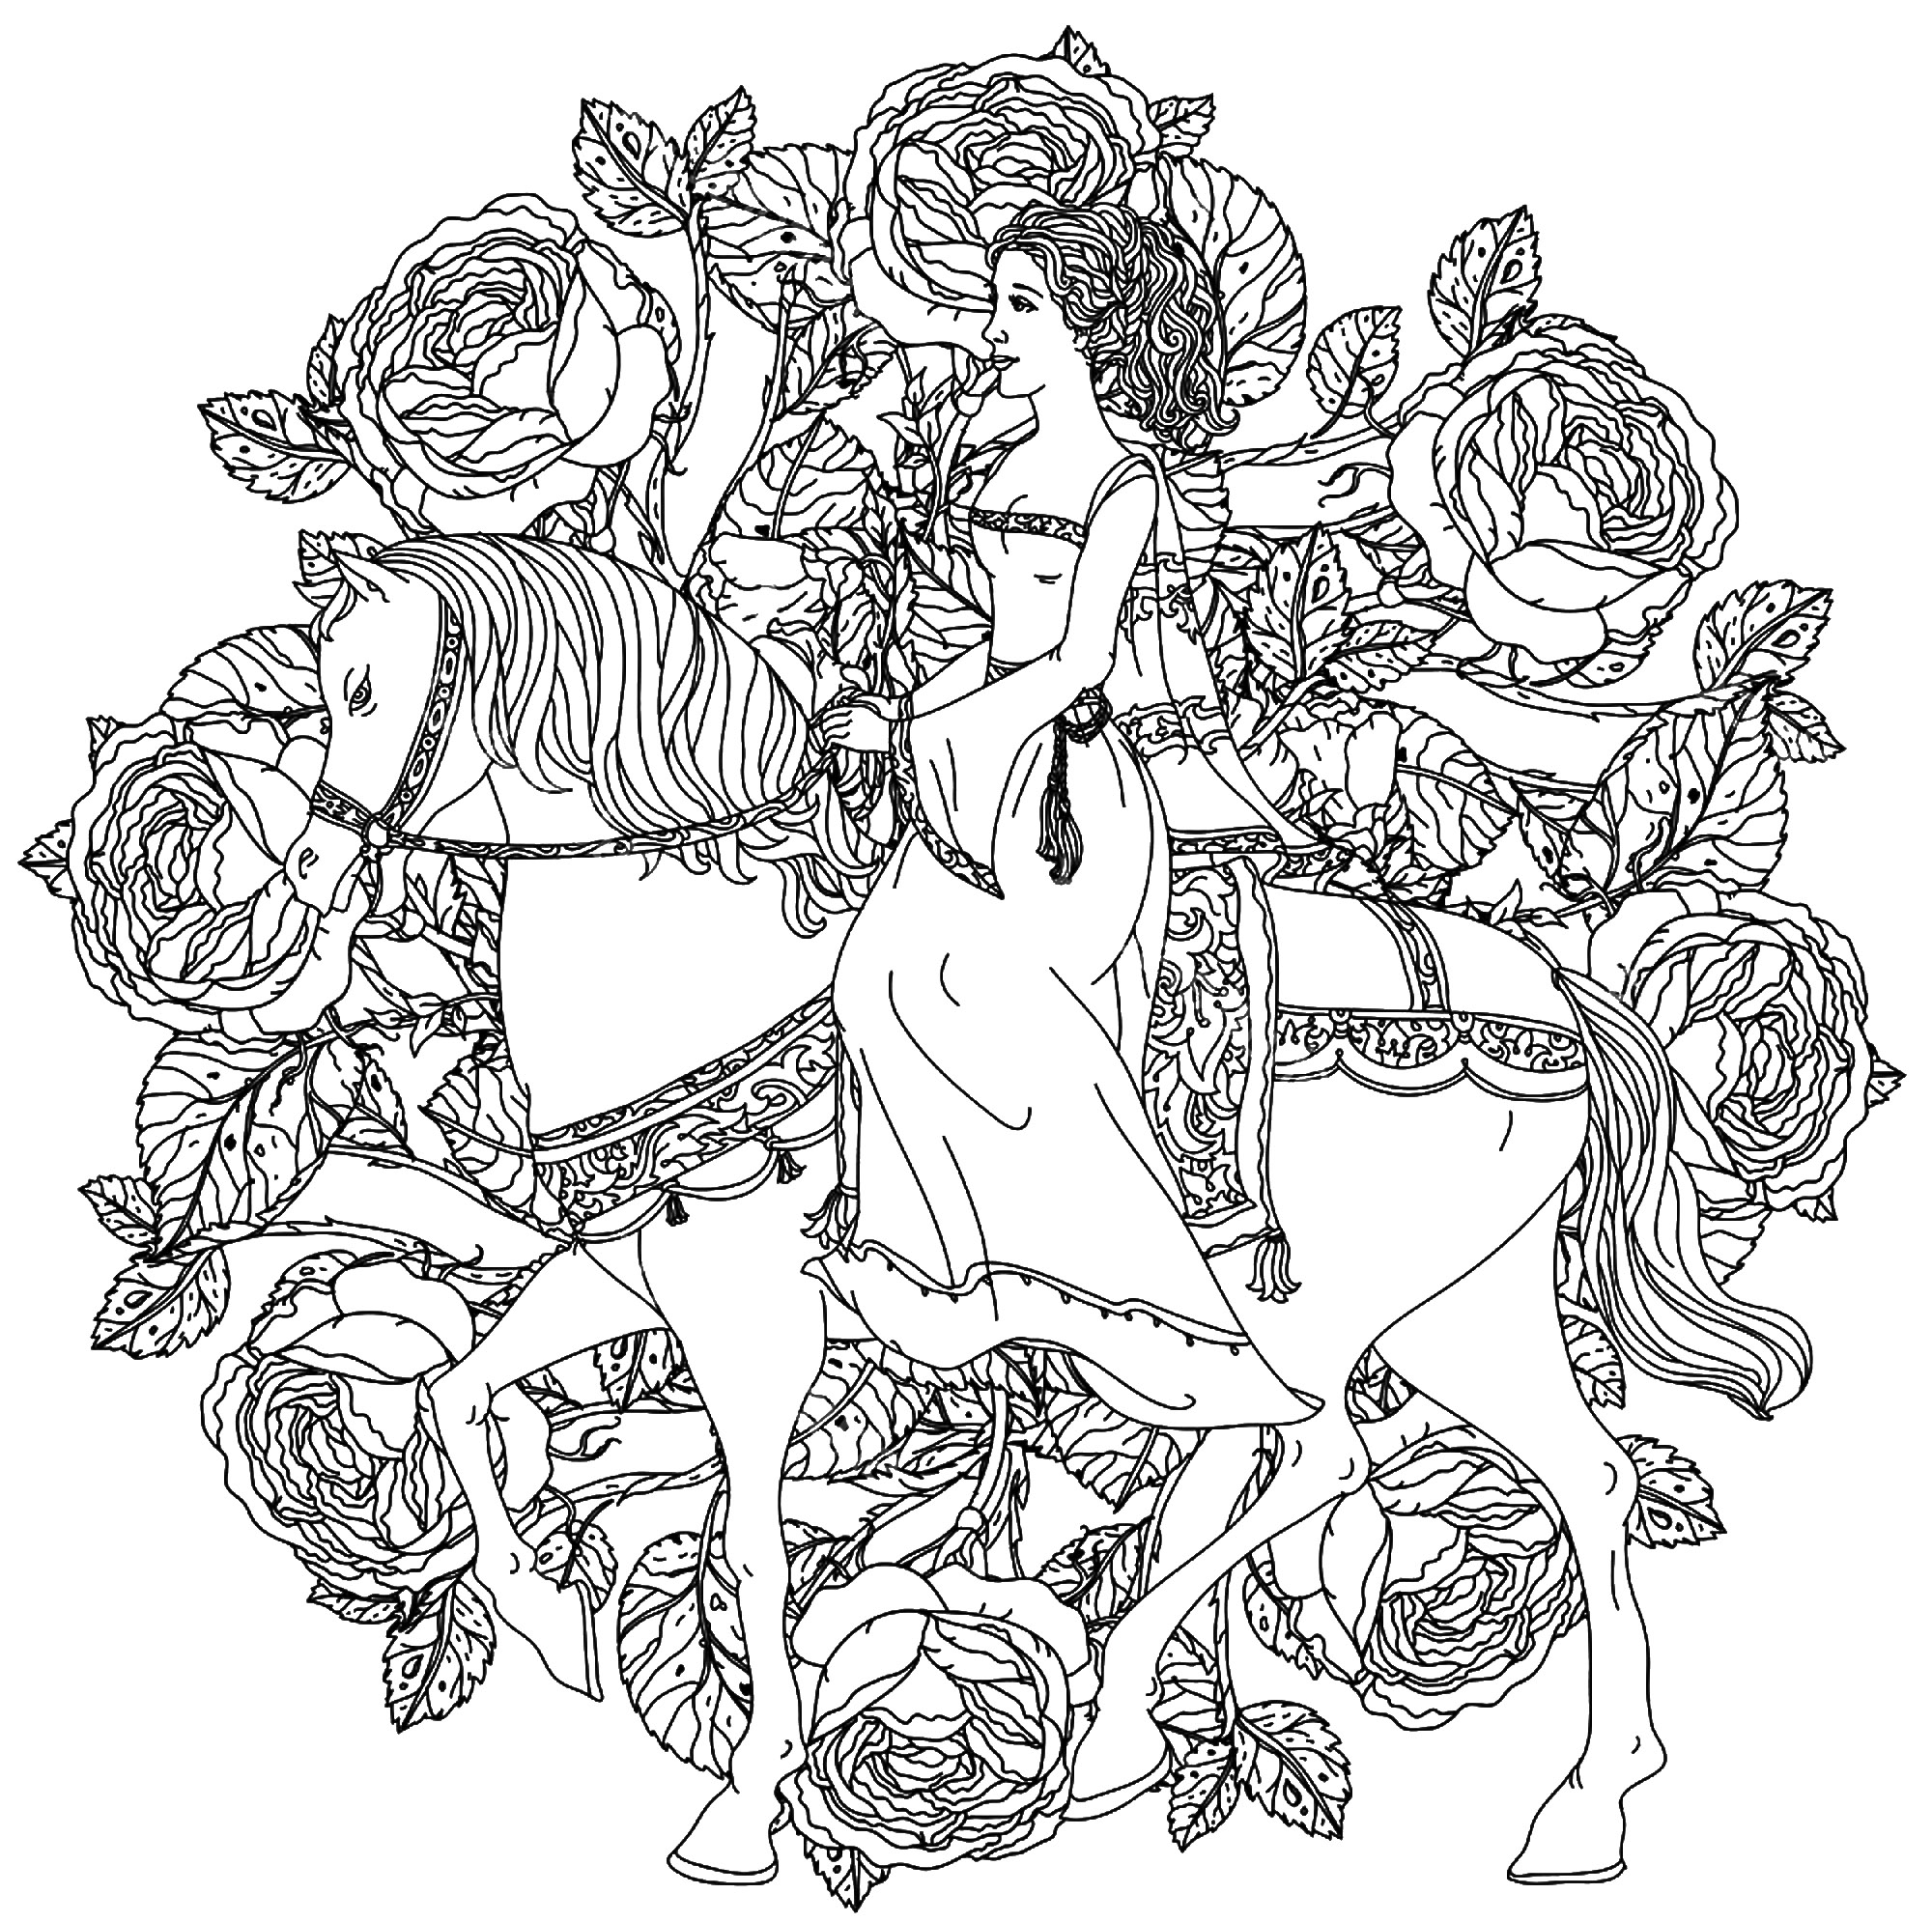 A beautiful and elegant Princess, riding her white horse, in the center of a Mandala compose of roses